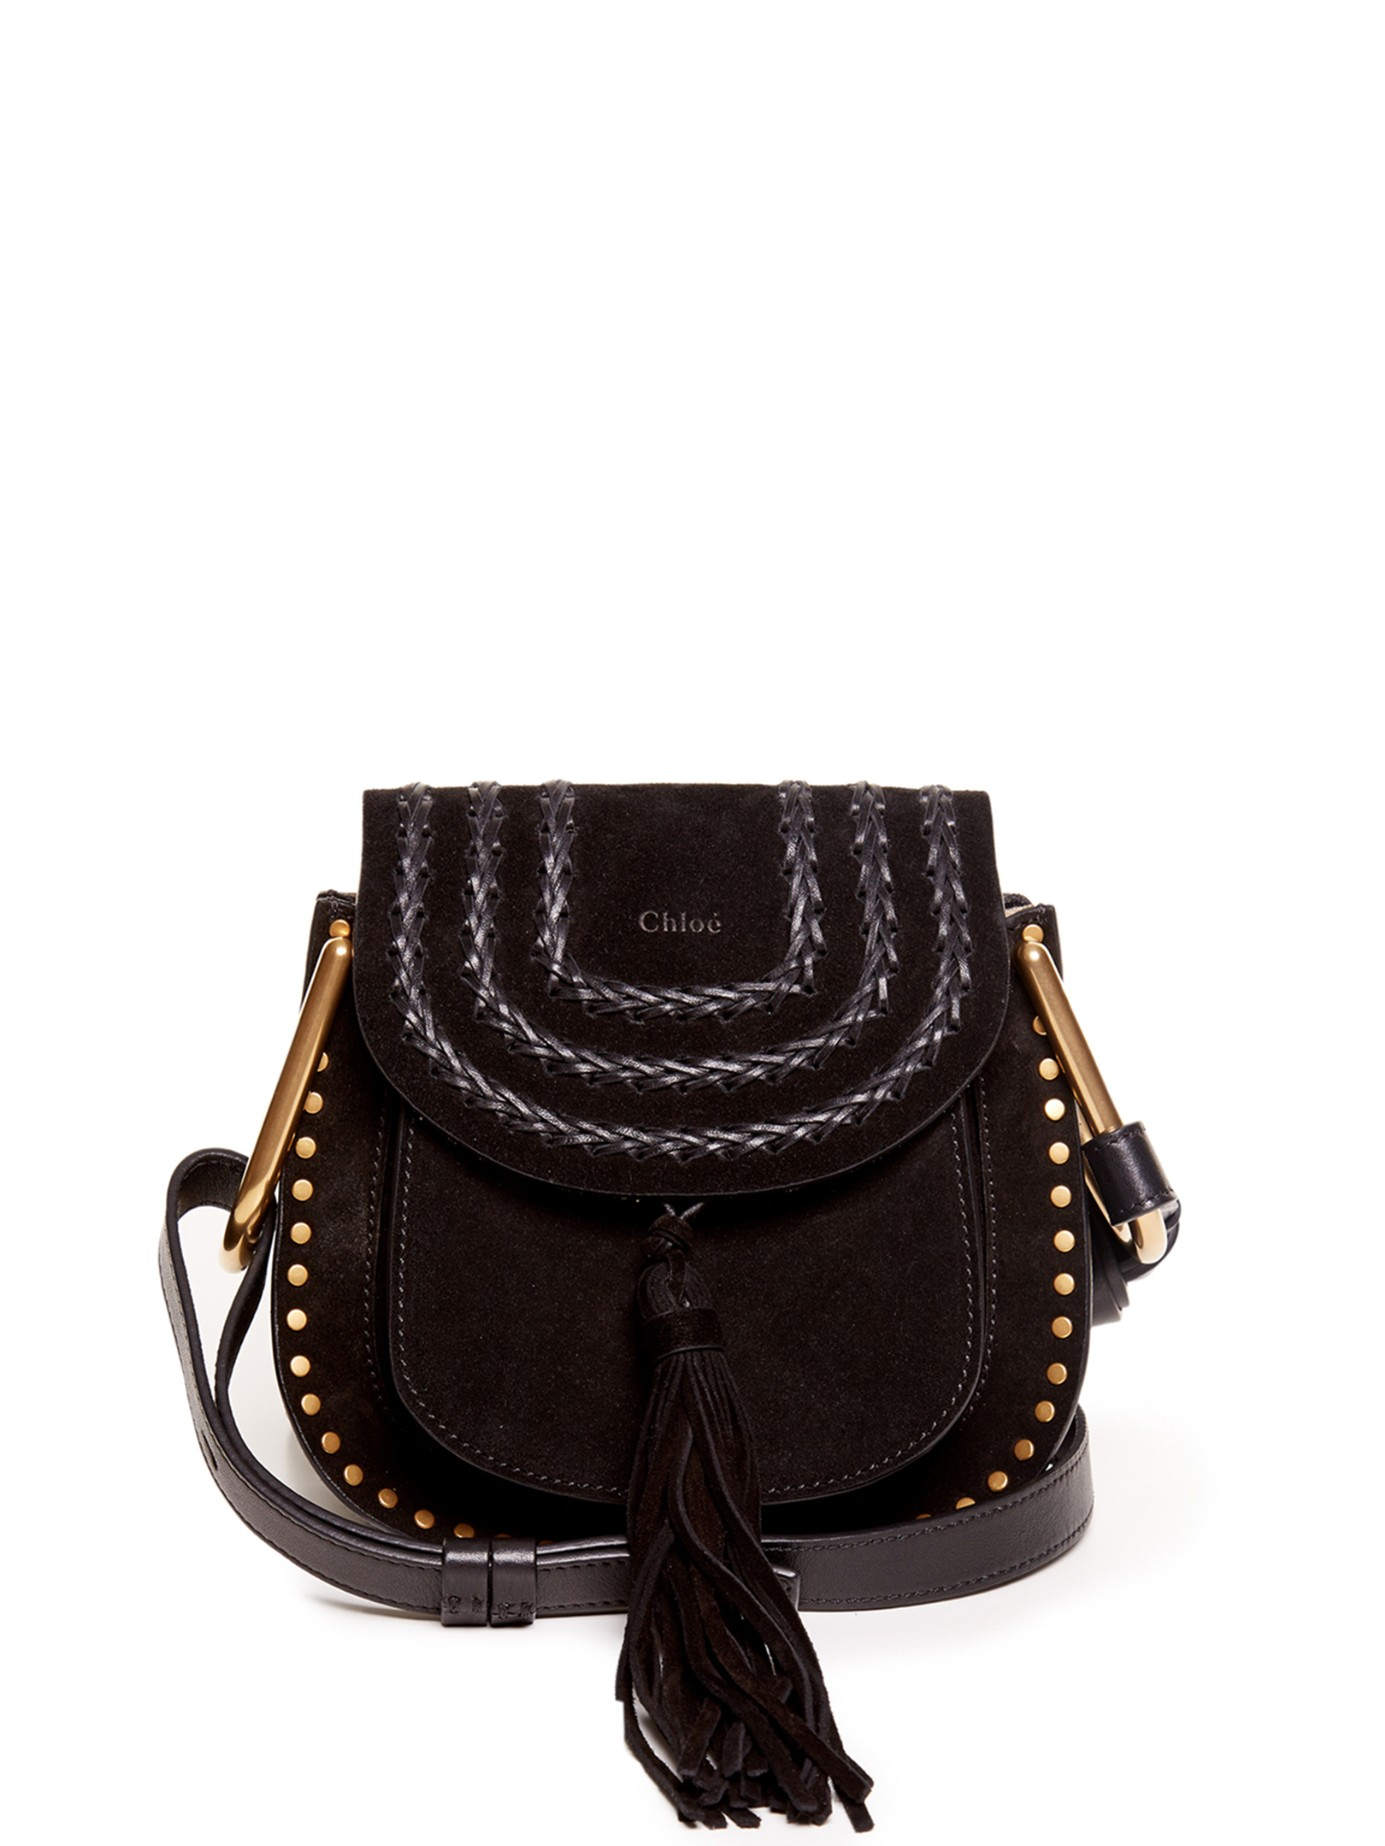 Chloé Hudson Small Suede Shoulder Bag in Black | Lyst